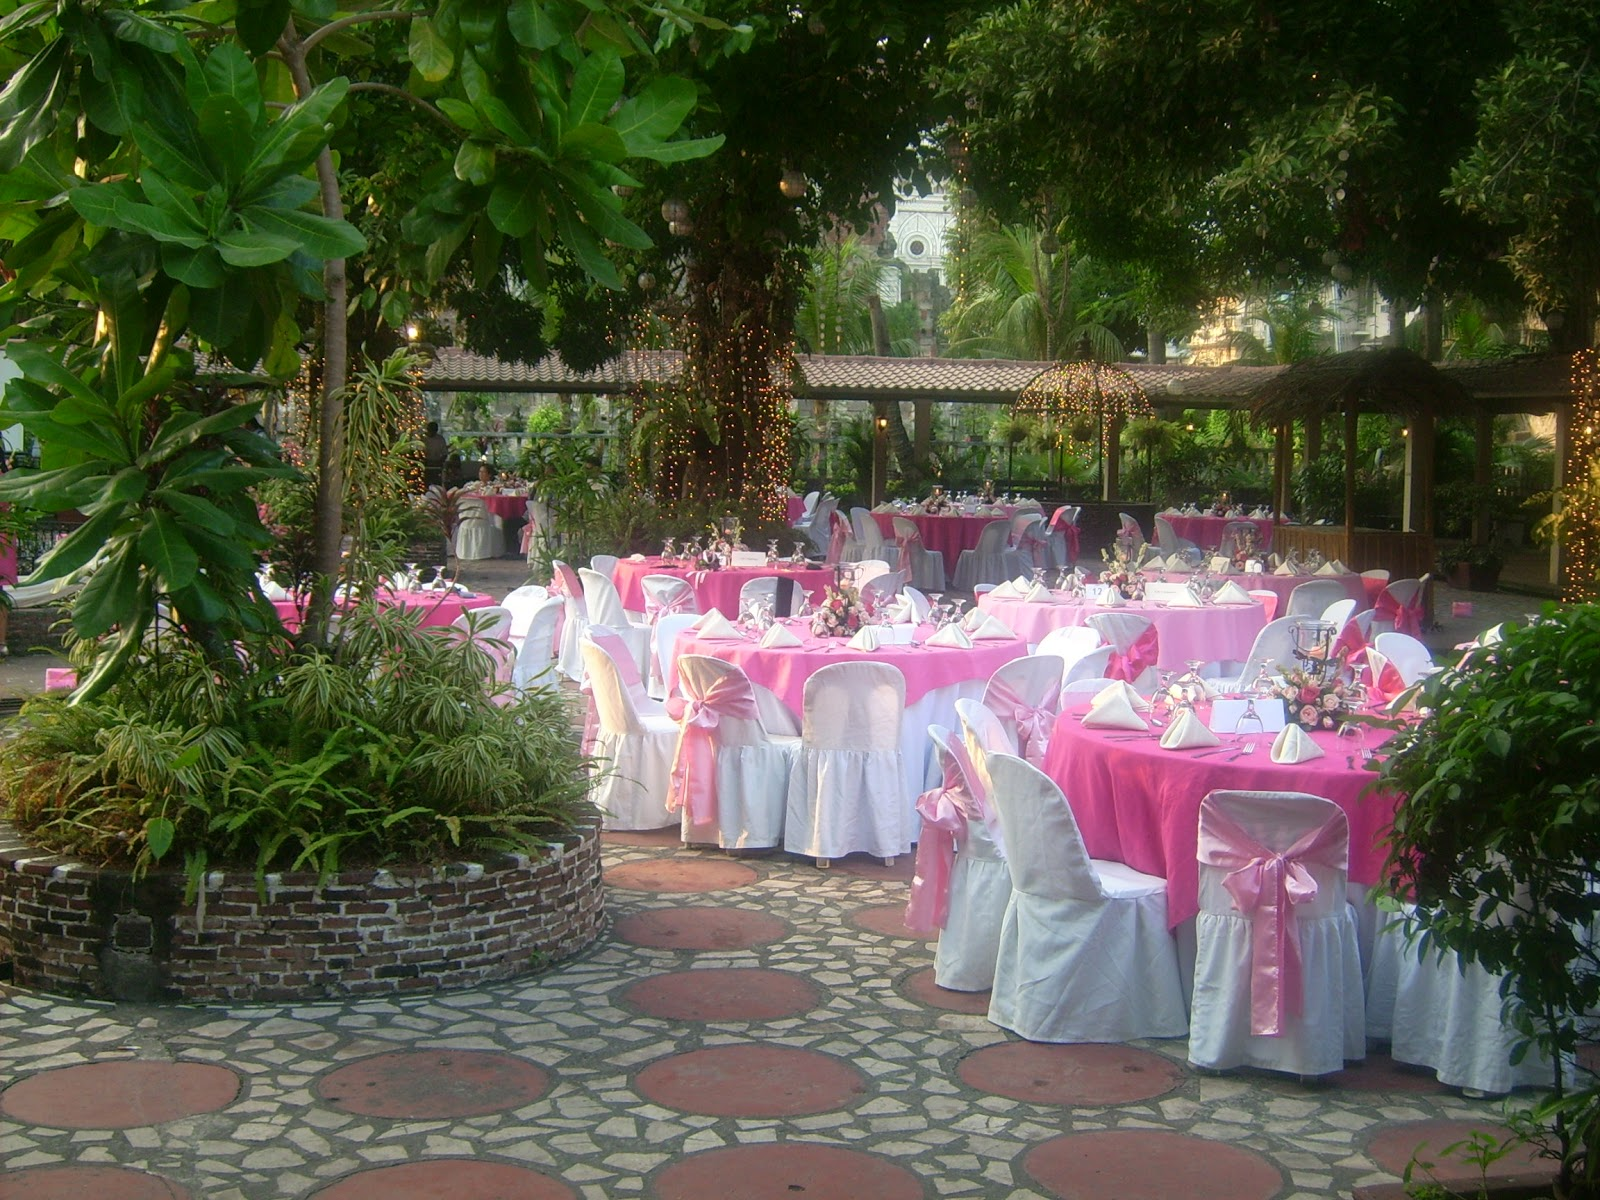 Wedding Decorations Chairs Receptions Executive Leather Office Lq Designs Ideas For On A Budget